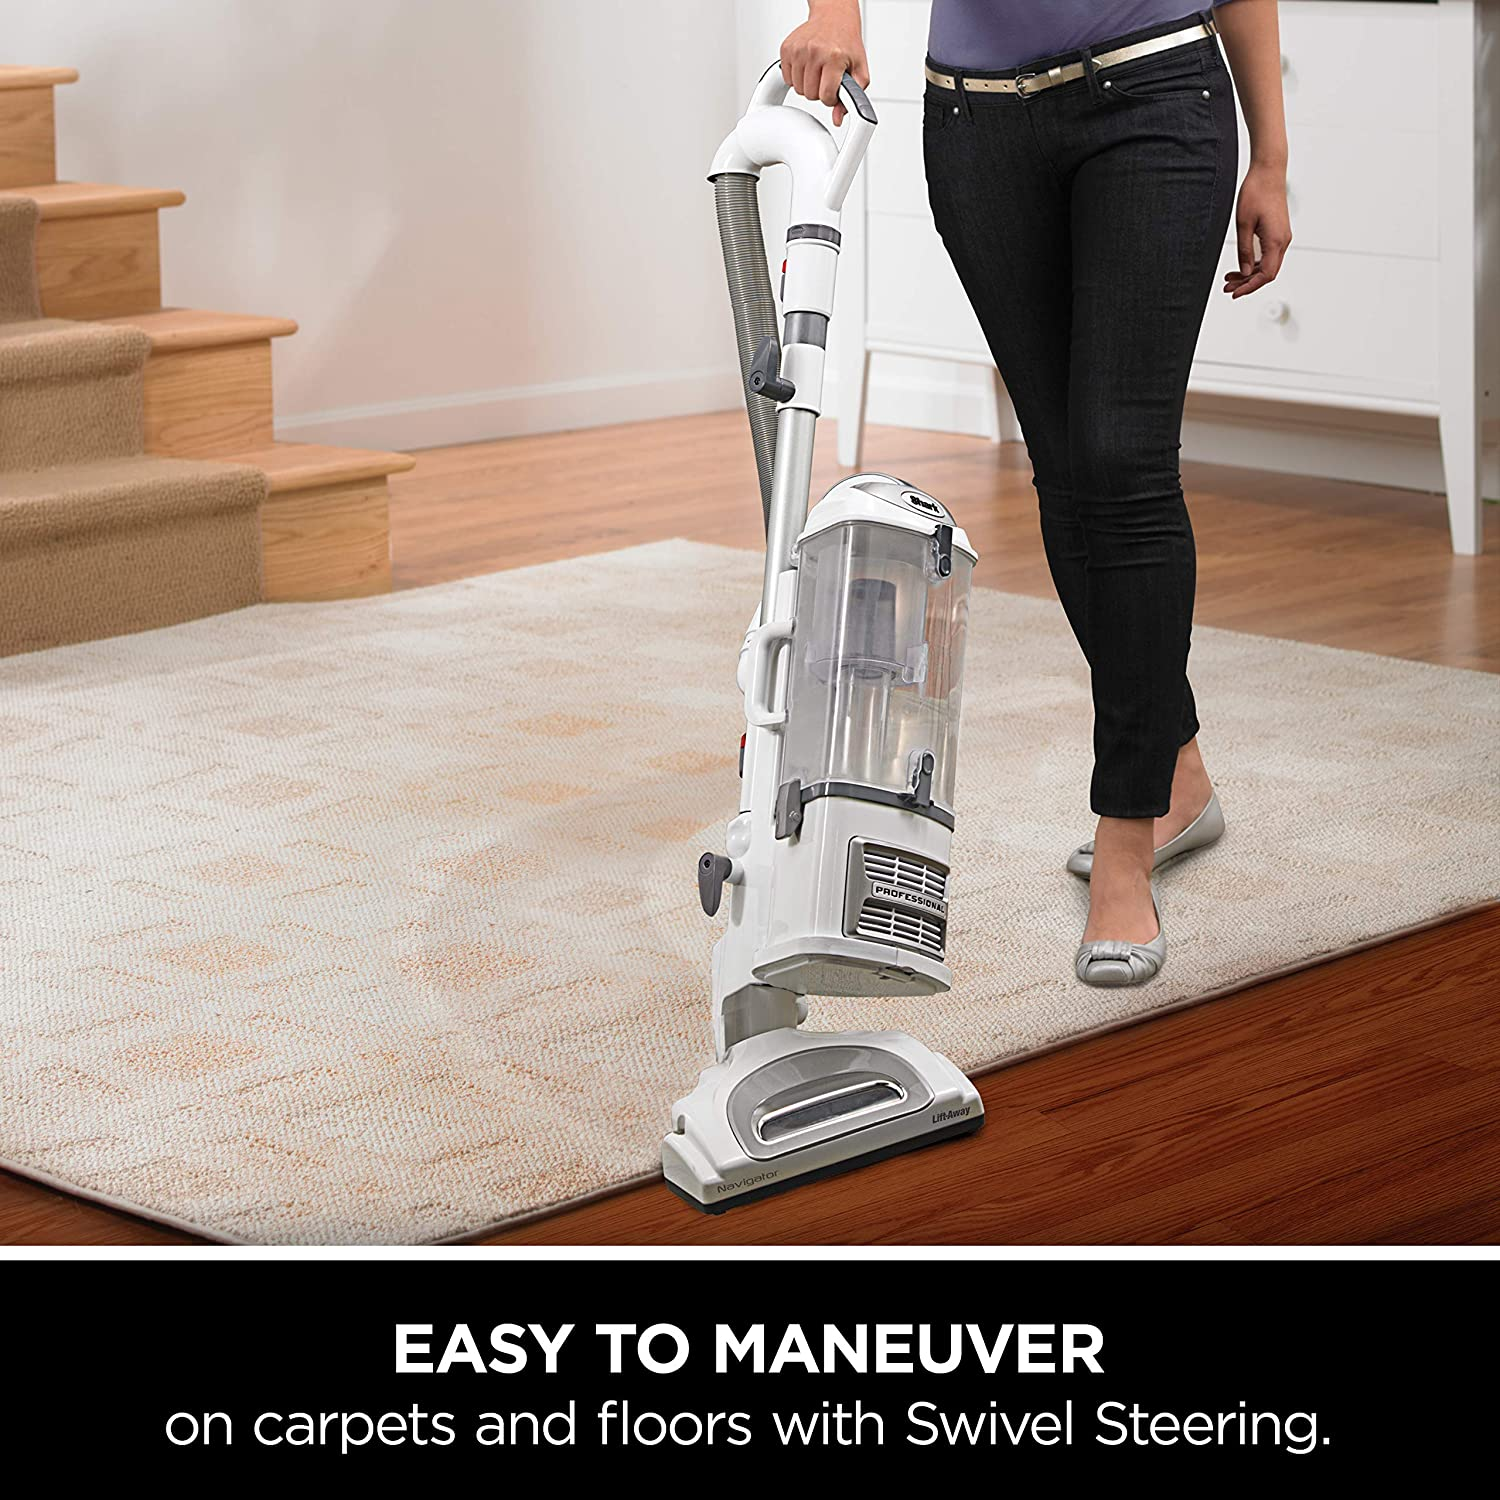 Best Shark Vacuums Tested & Reviewed 31